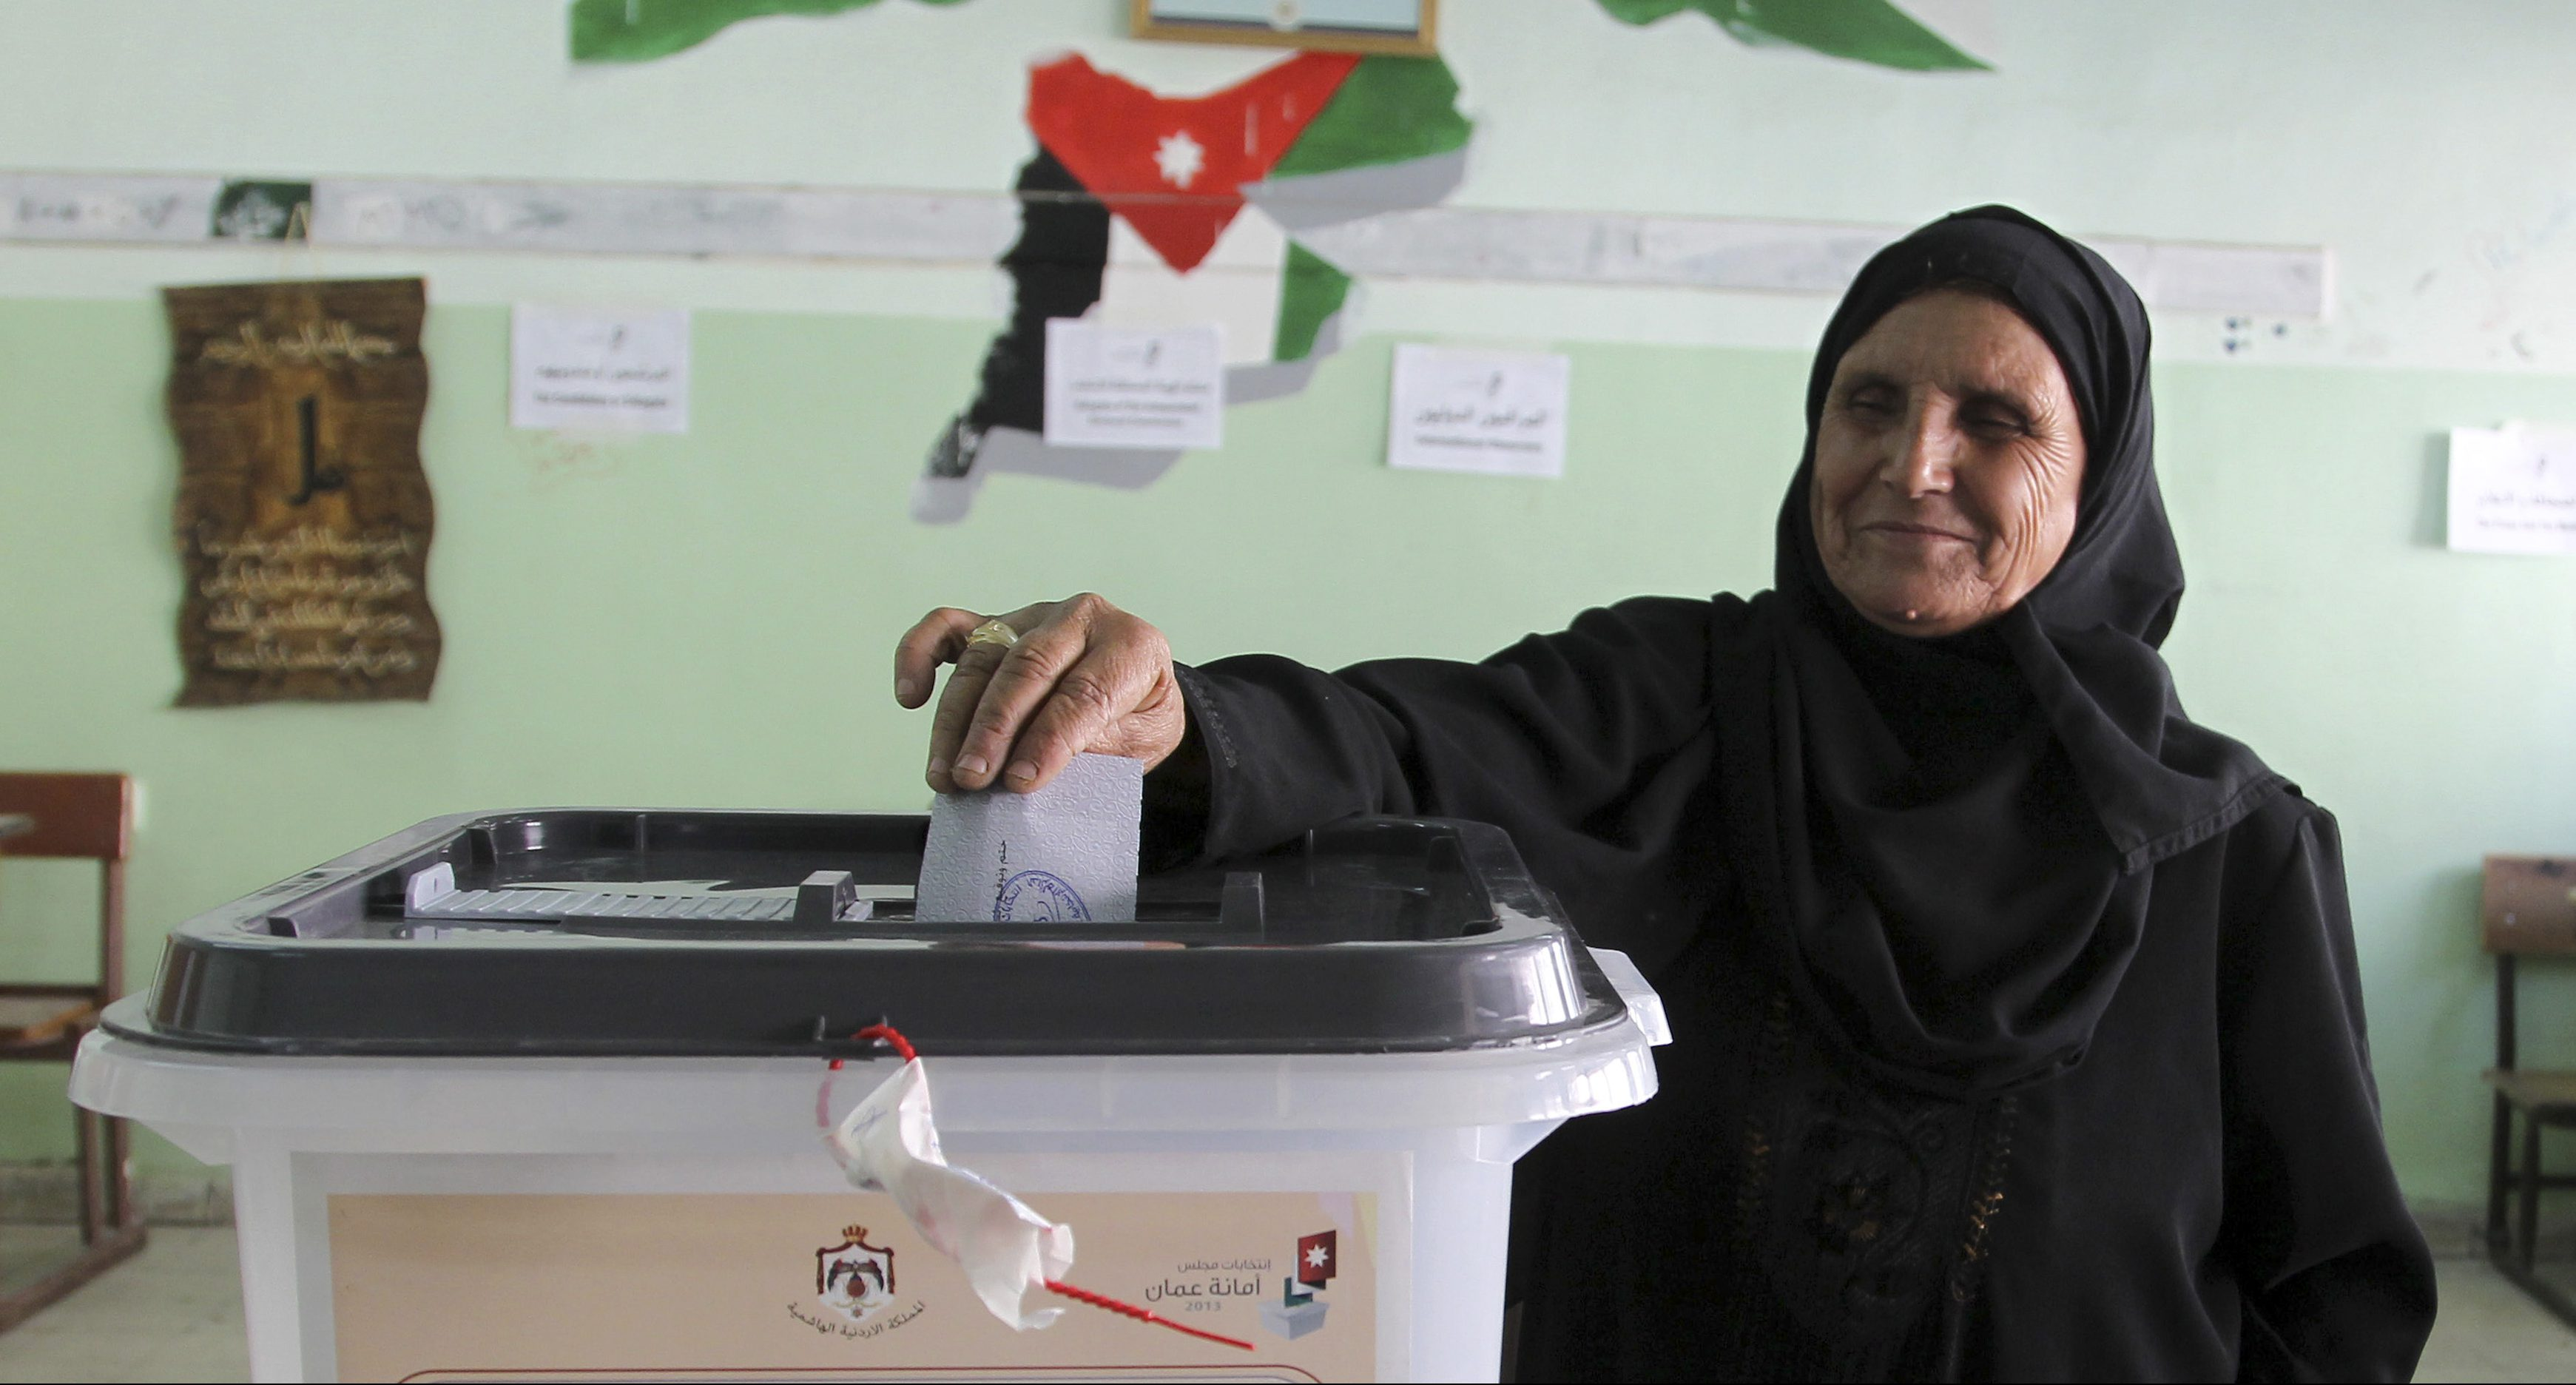 A Jordanian woman casts her ballot for municipal elections at a polling station in Amman August 27, 2013. The Muslim Brotherhood, the main opposition party, is boycotting the polls. REUTERS/Muhammad Hammad (JORDAN - Tags: ELECTIONS POLITICS) - GM1E98S00ST01